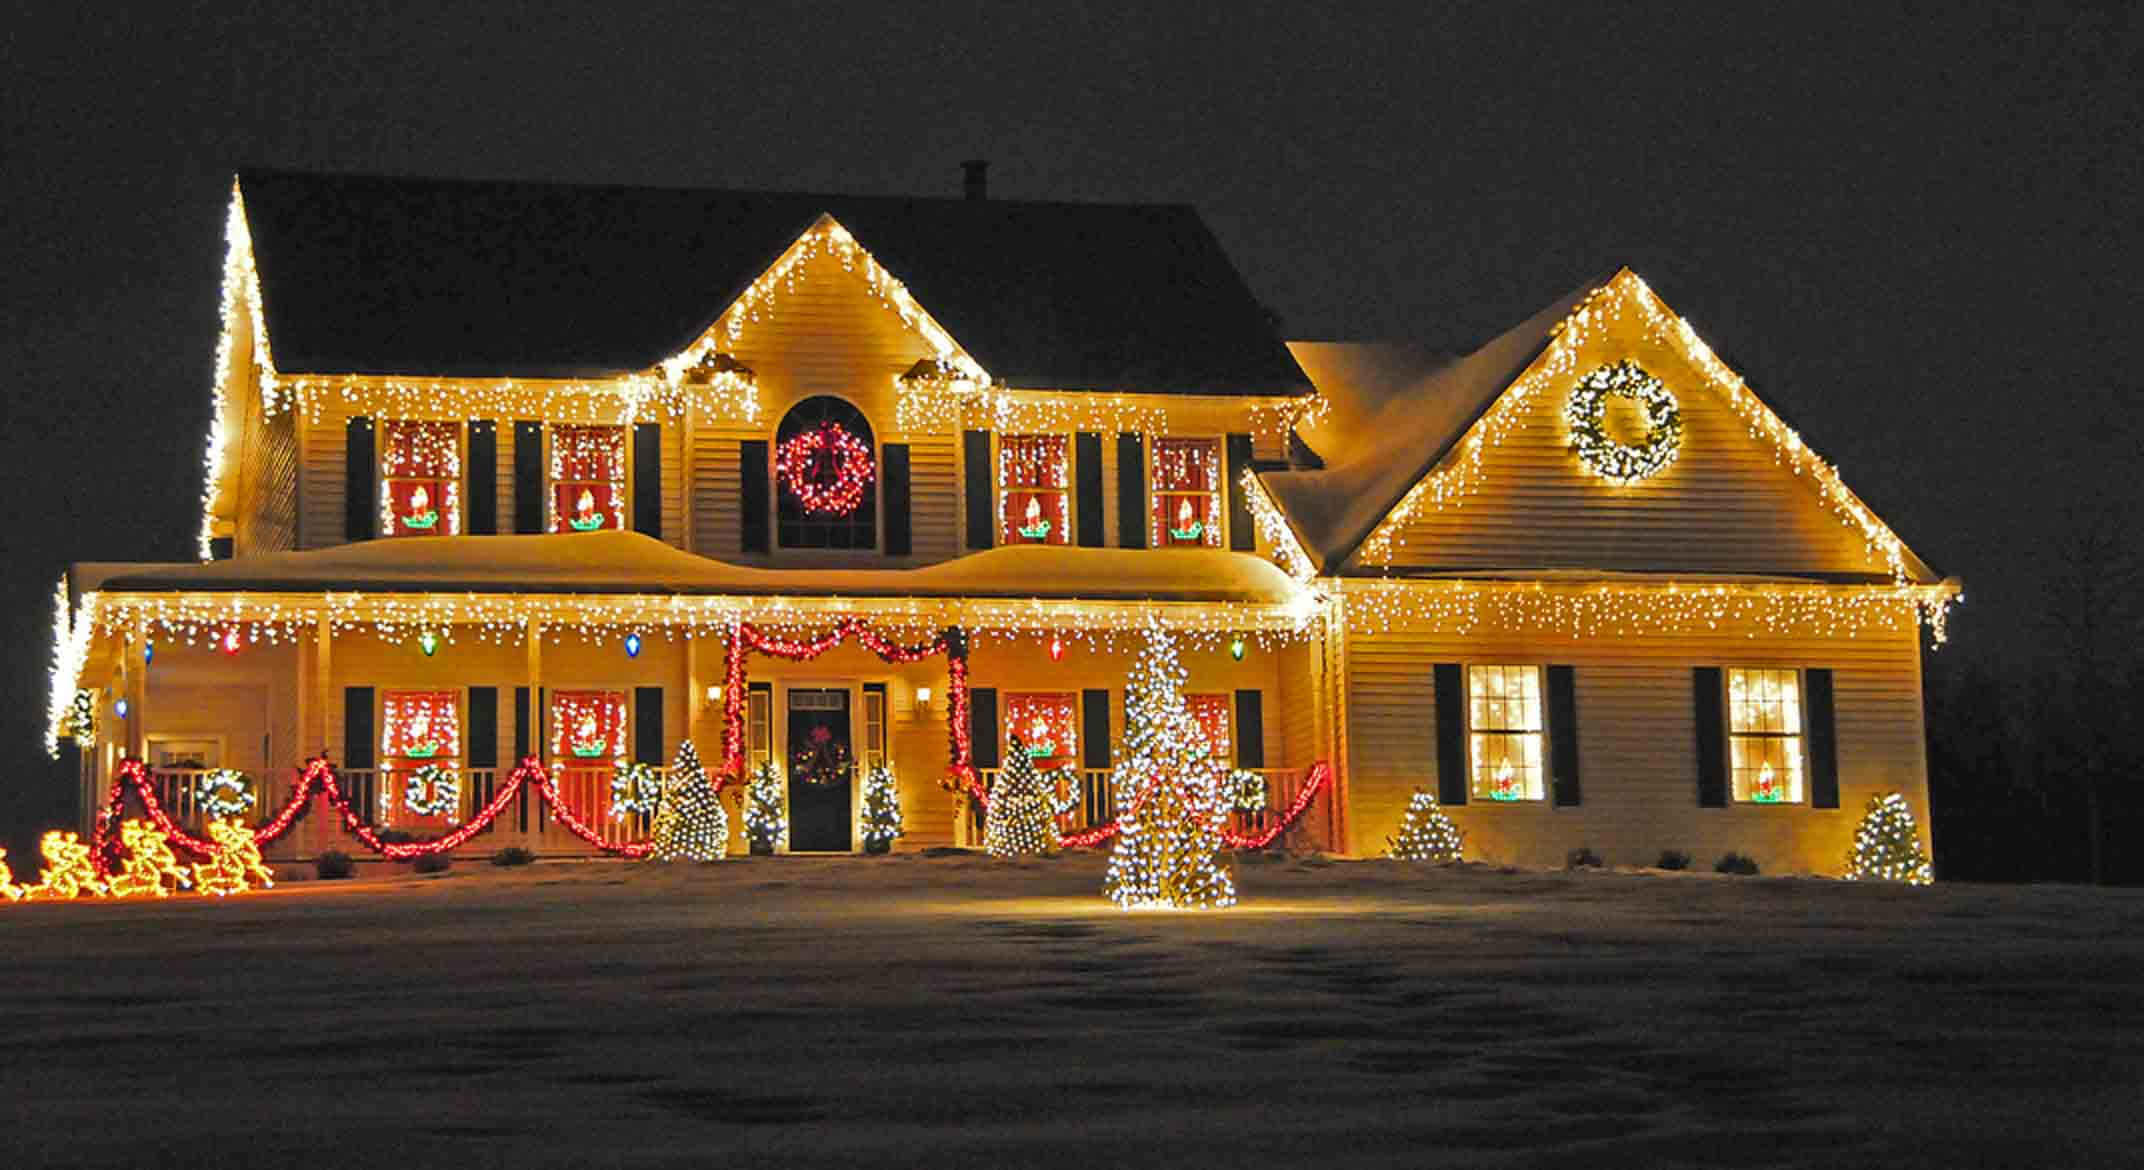 An example of using Christmas lights to create art.